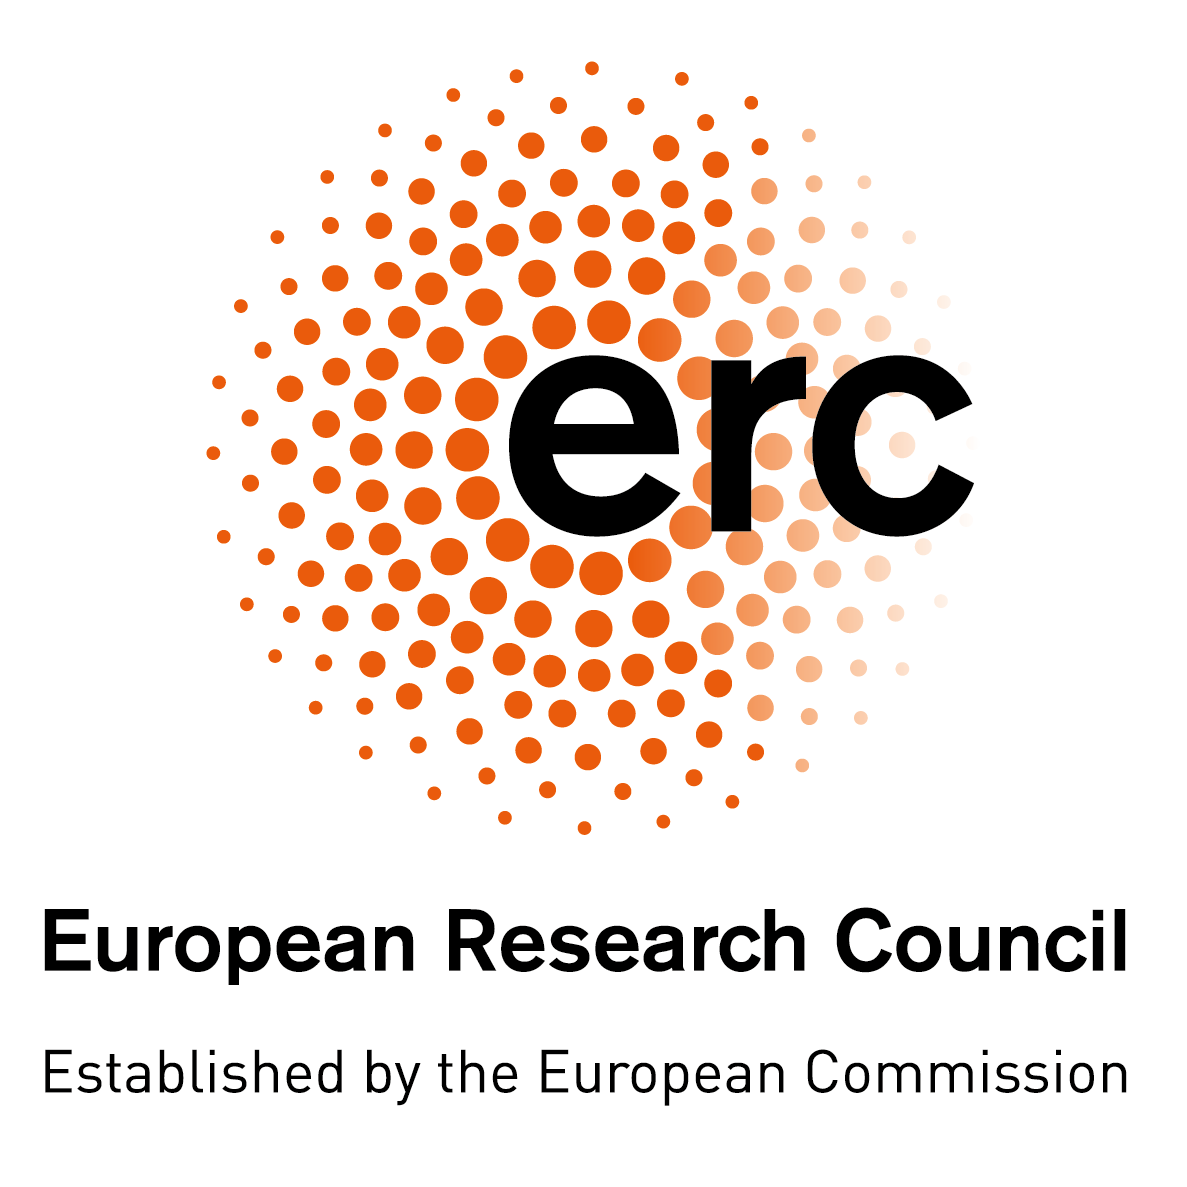 Communicating your research | ERC: European Research Council